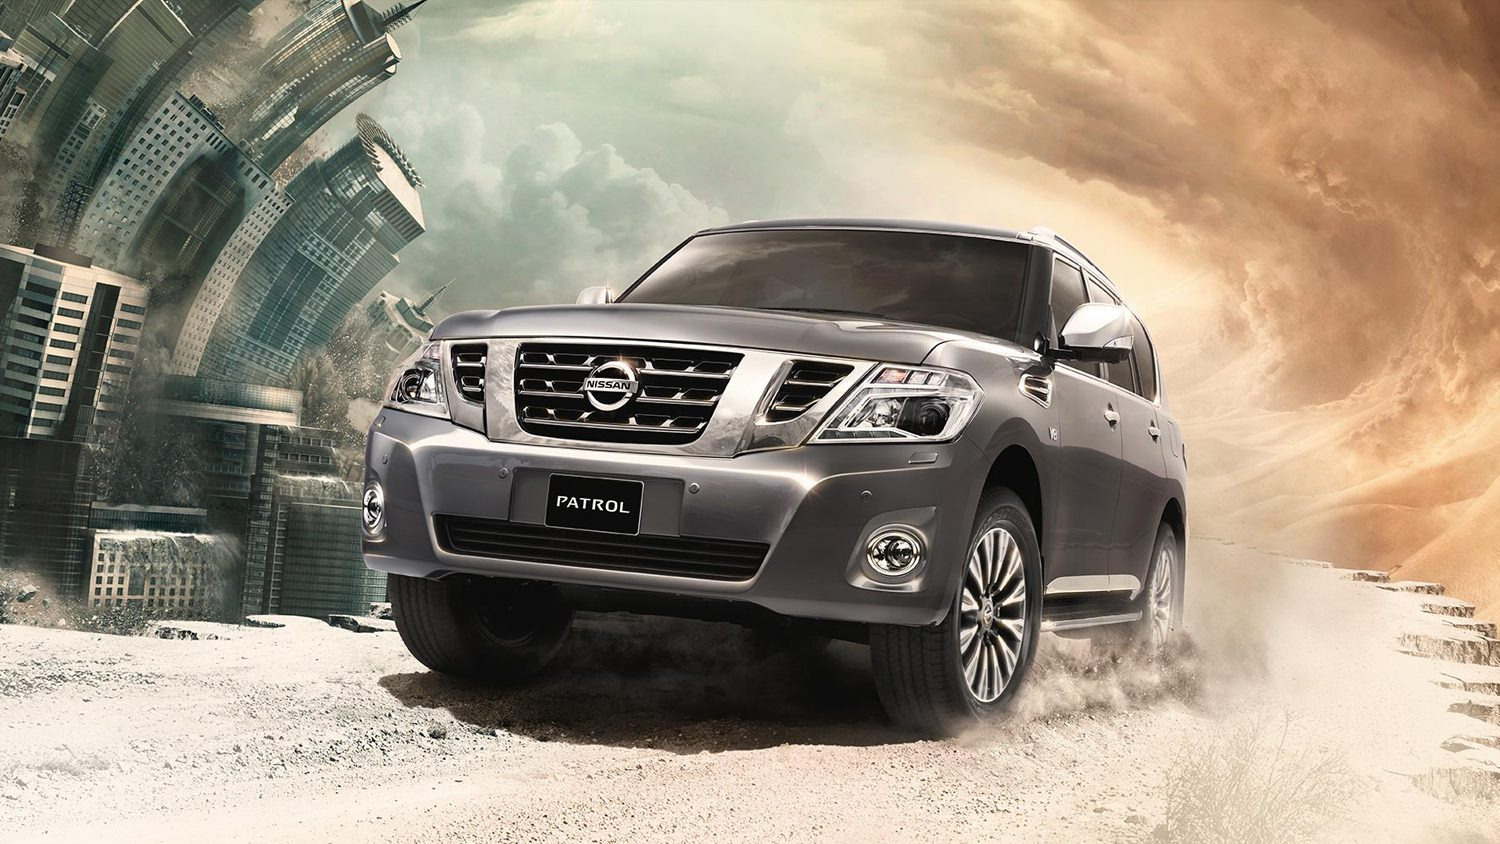 2018 NISSAN PATROL driving on a desert road